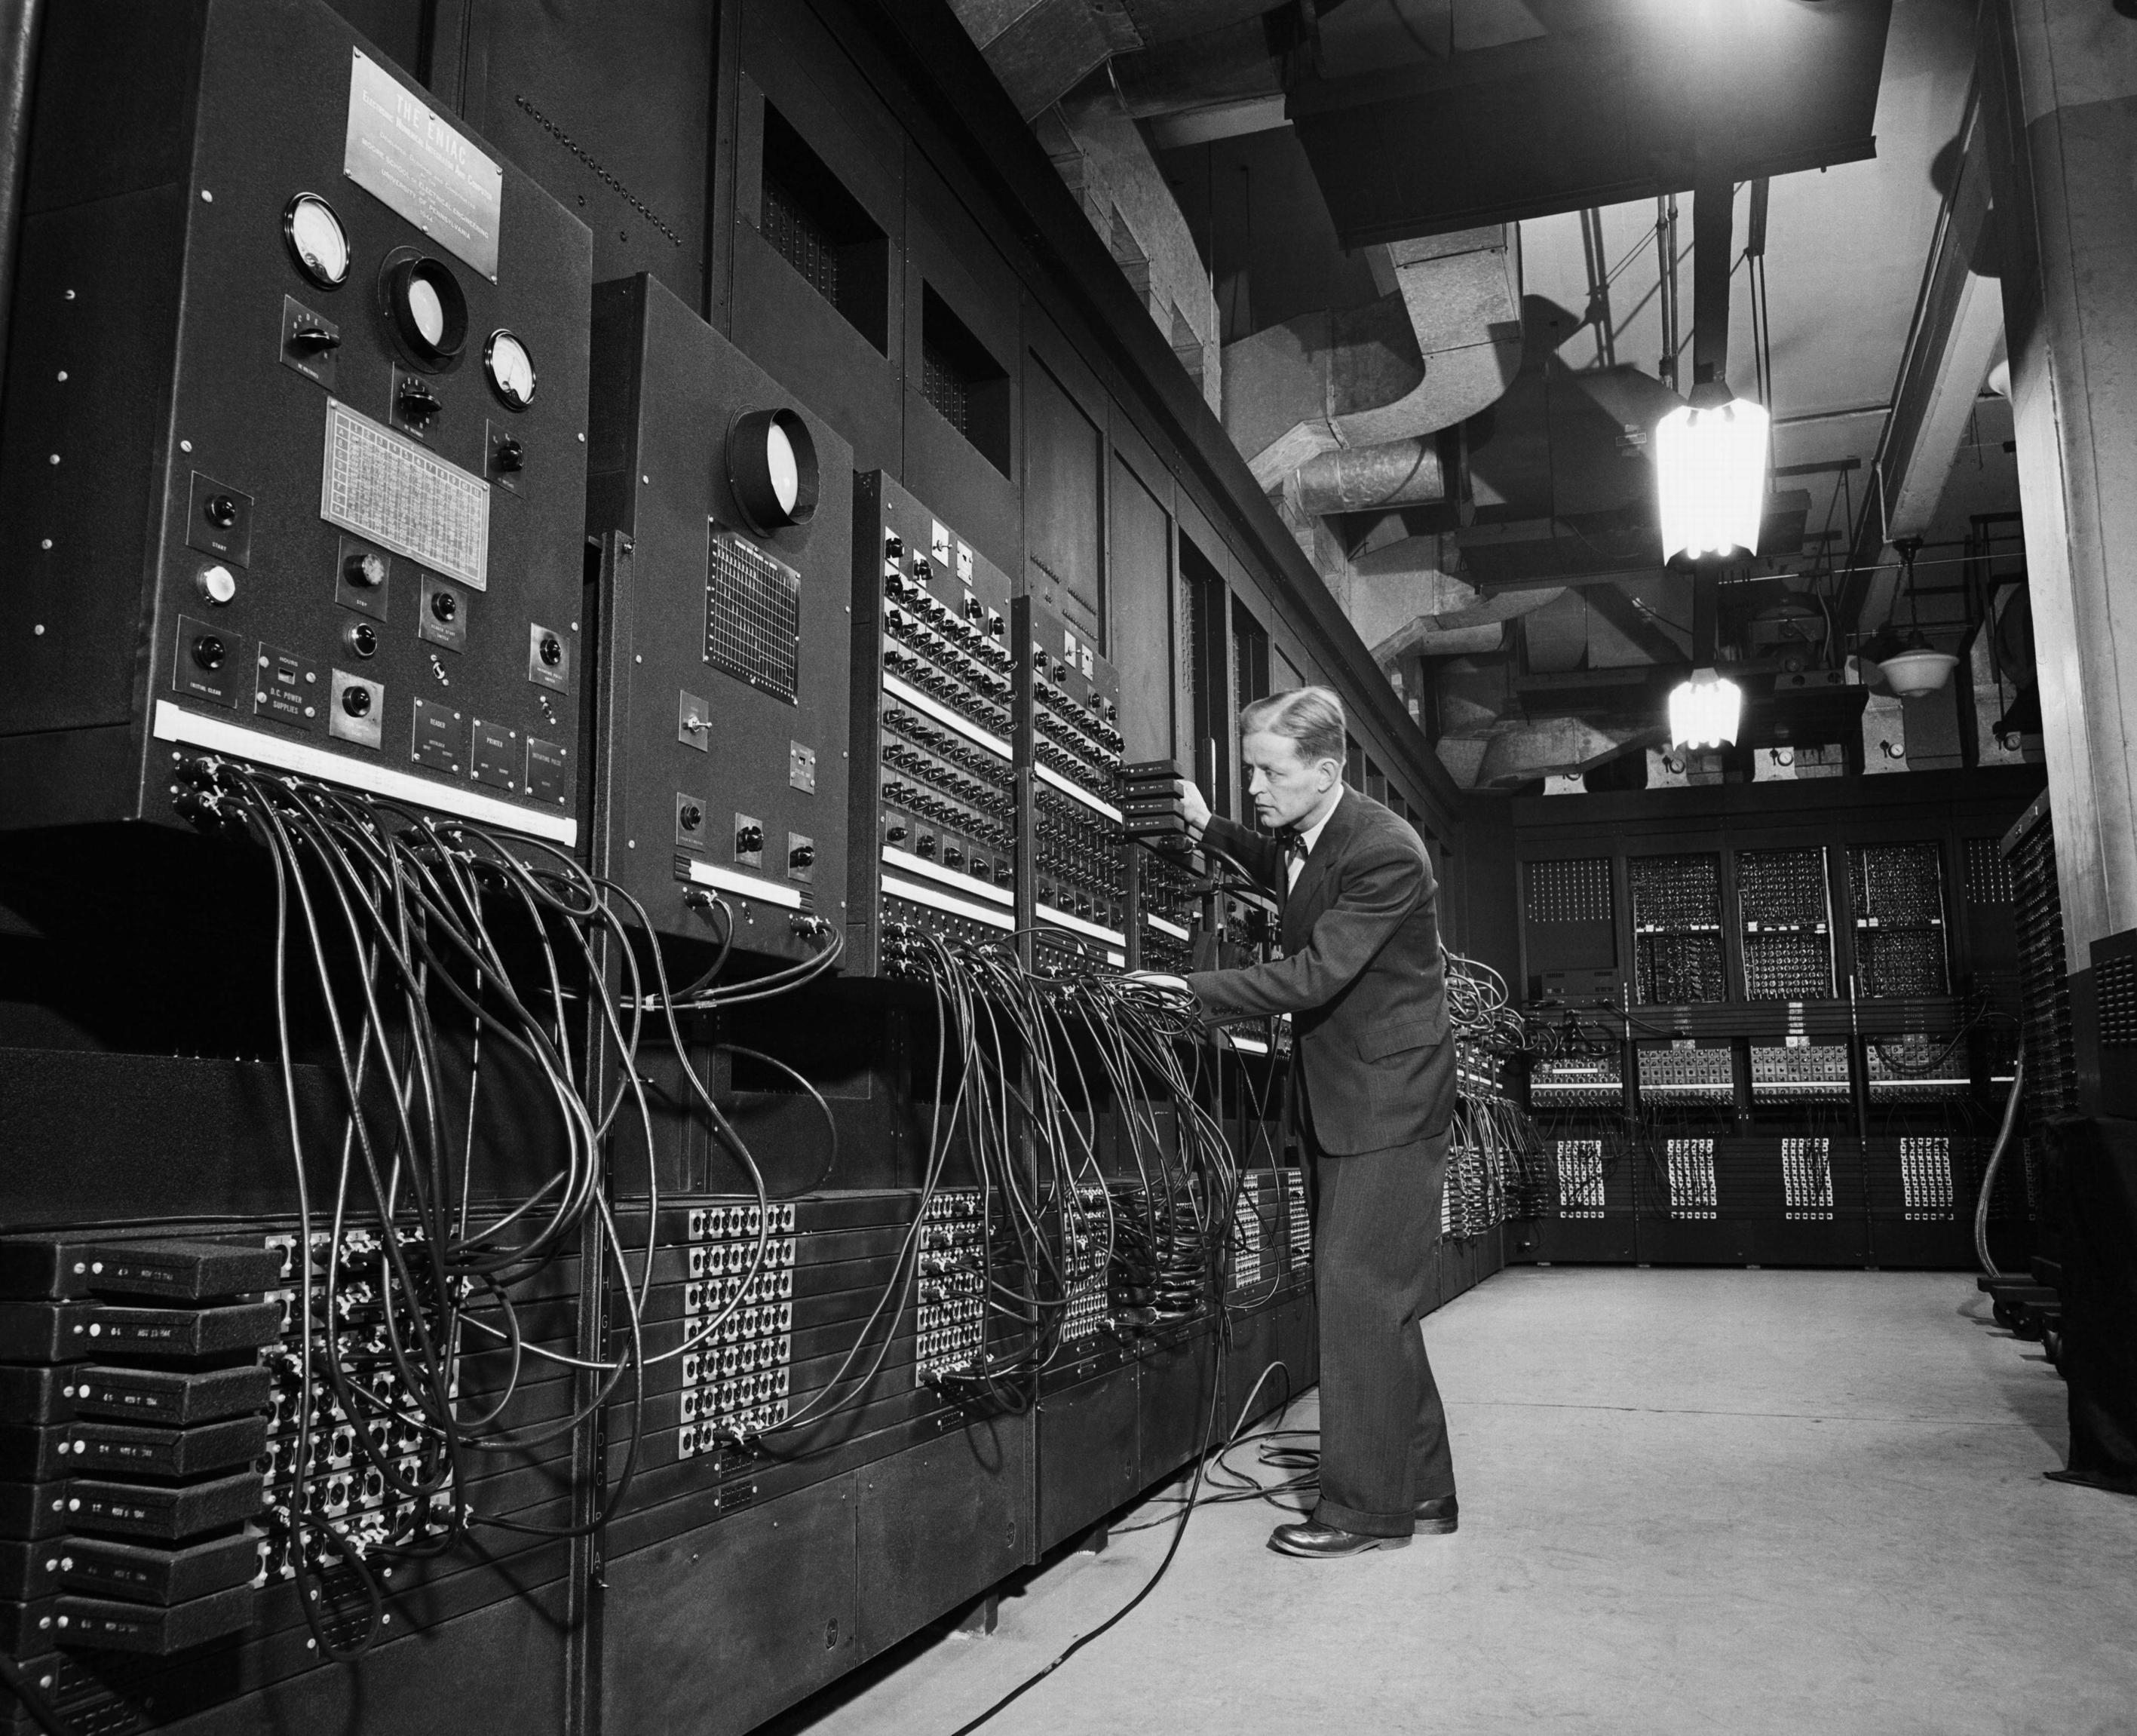 Back to School – A Bit of Computer History Shows Where We Might Be Headed